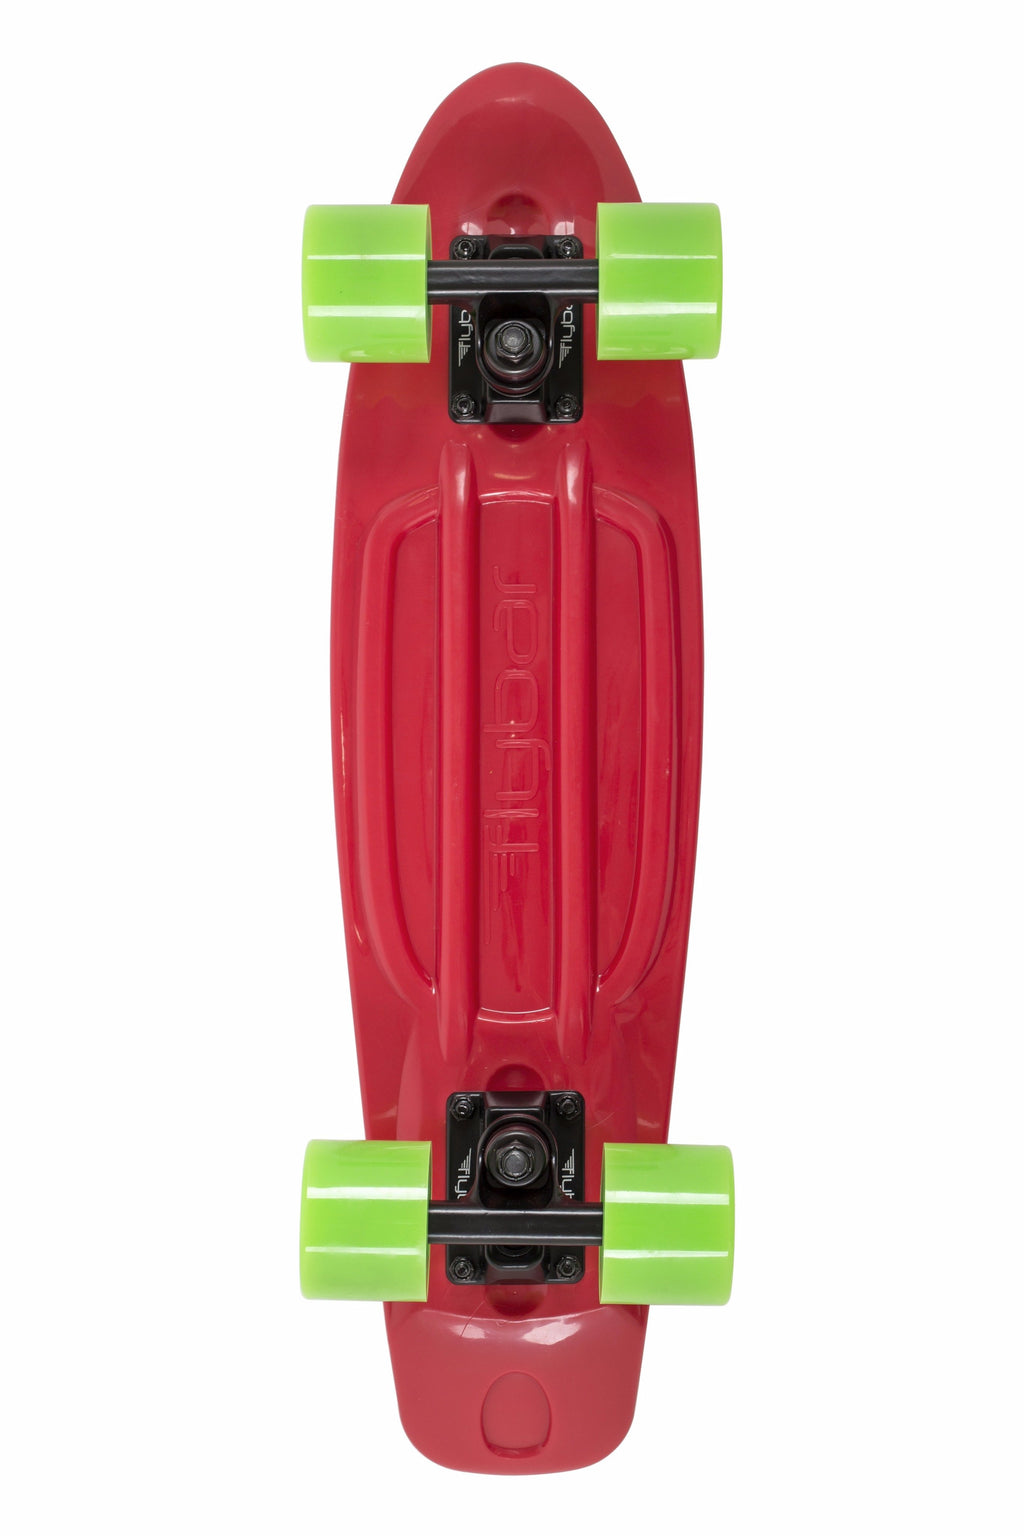 "Flybar 22"" Complete Plastic Cruiser Skateboards- Red, Green"